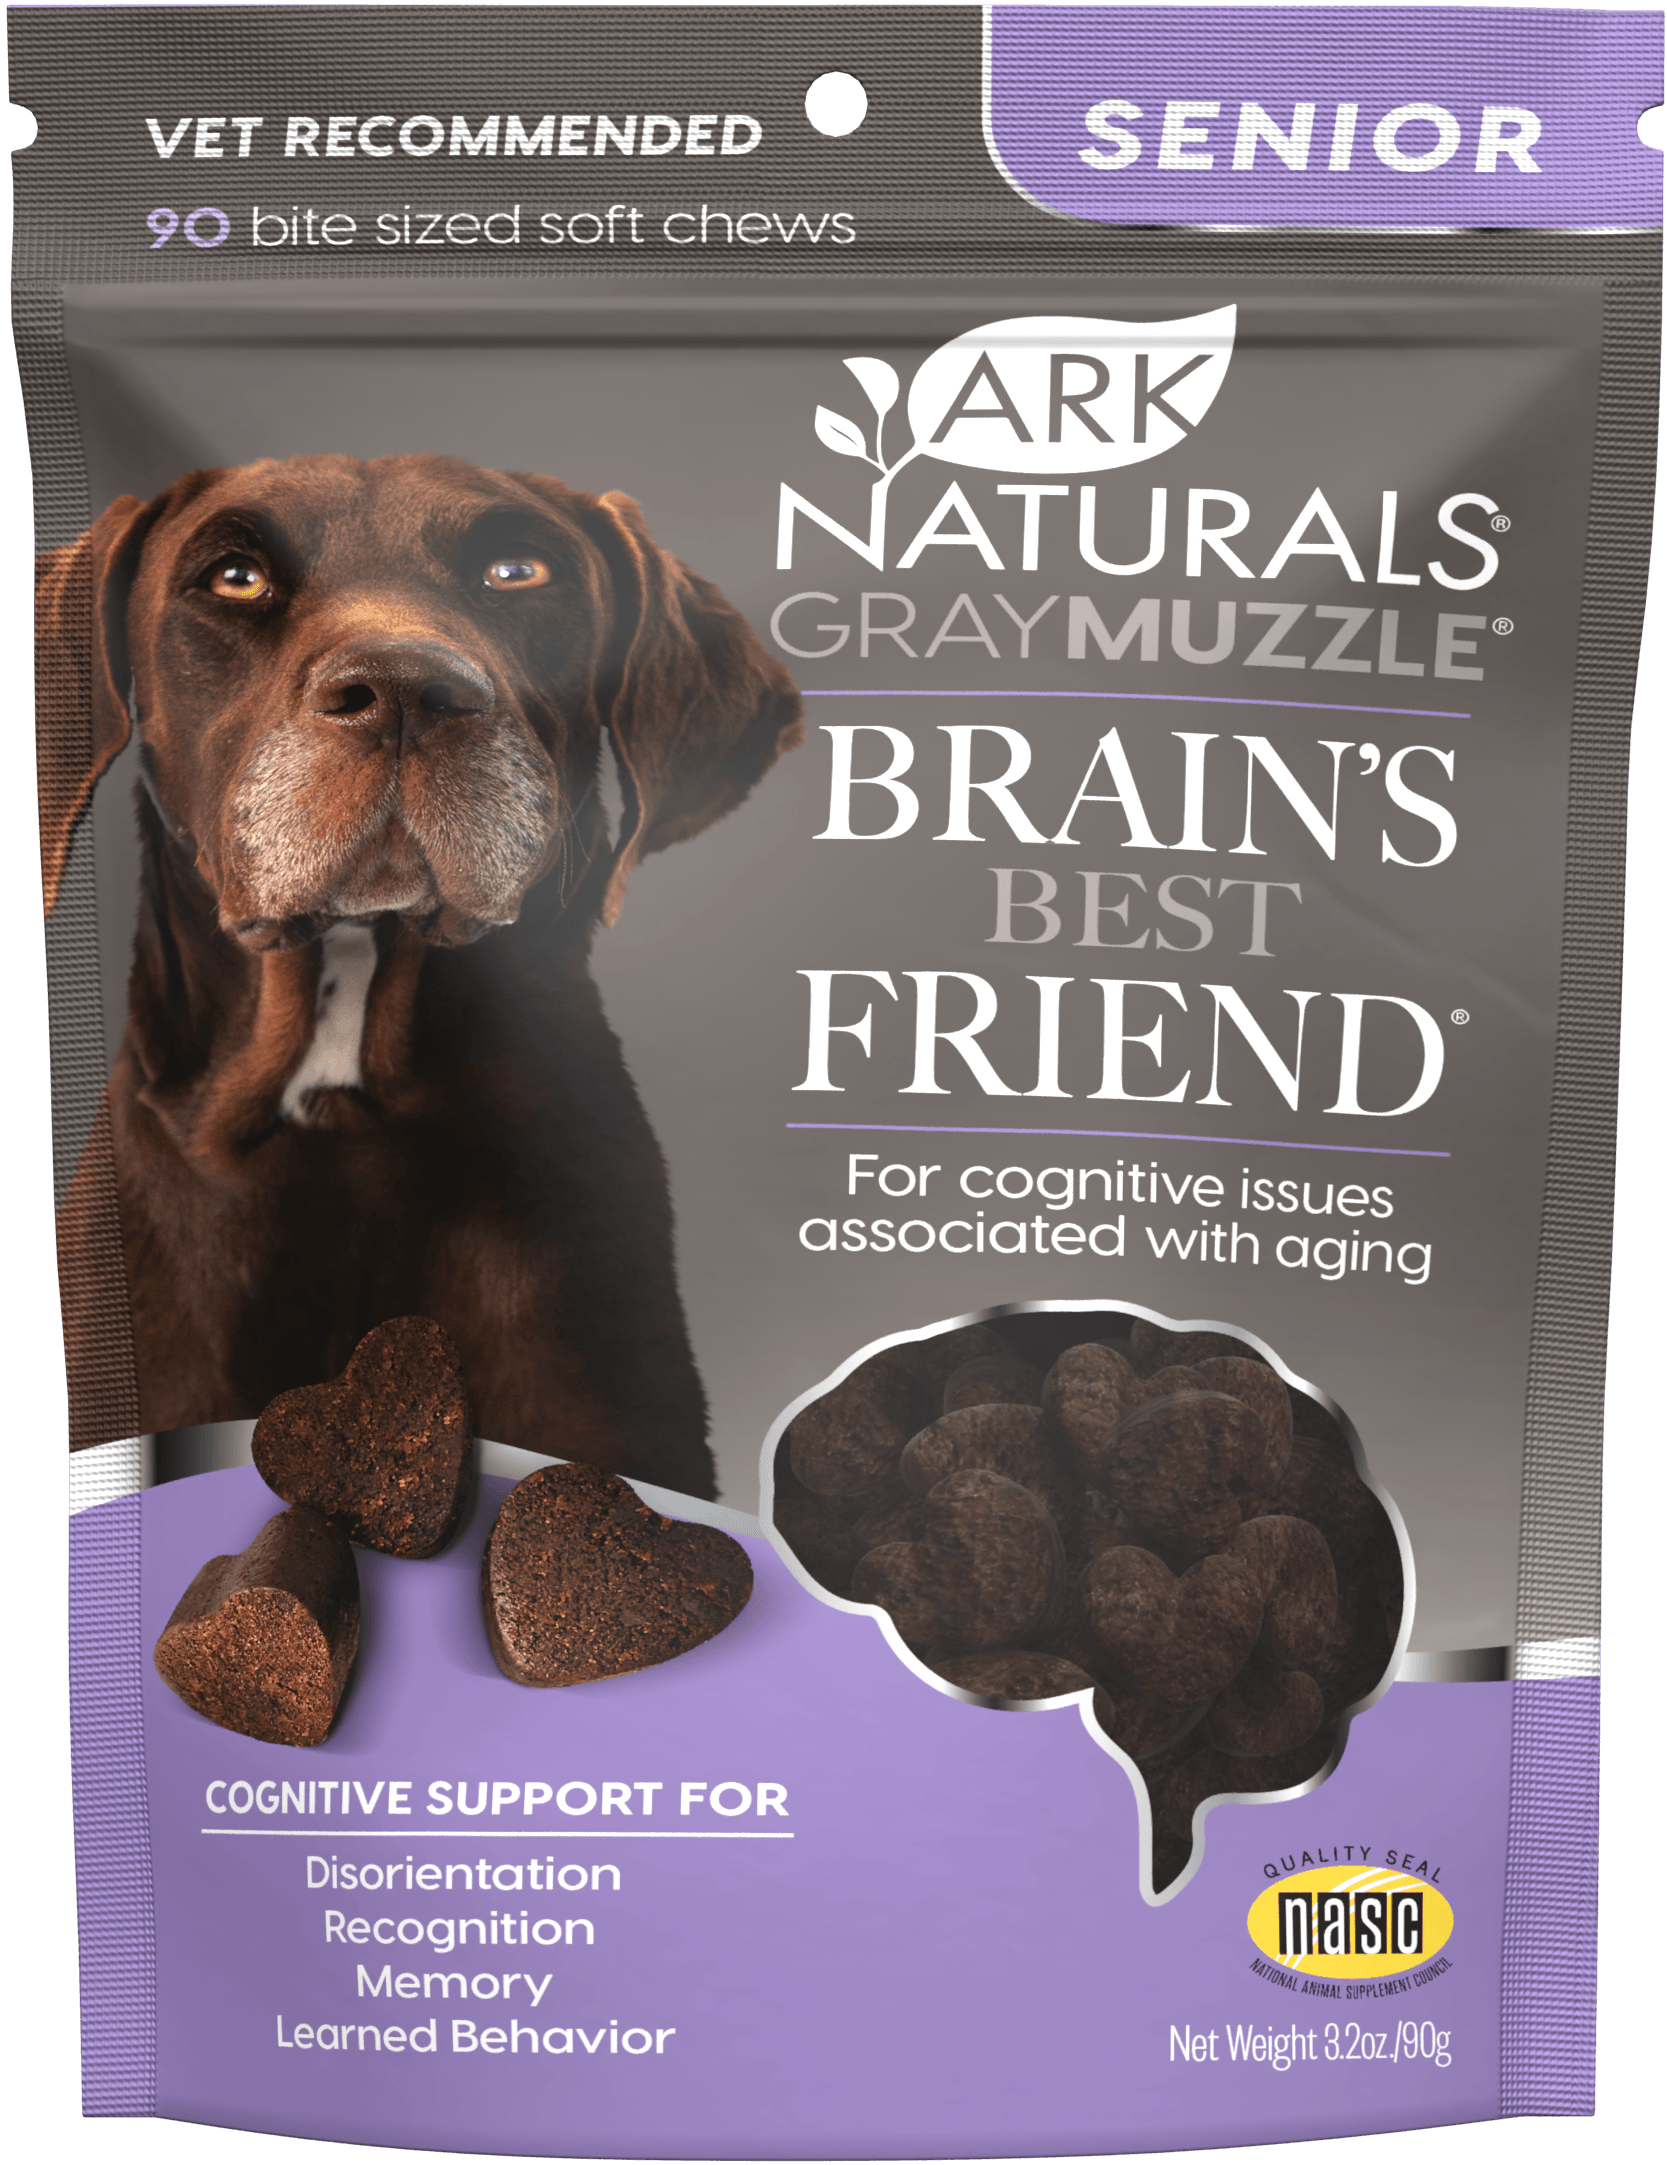 Gray Muzzle Brain's Best Friend!